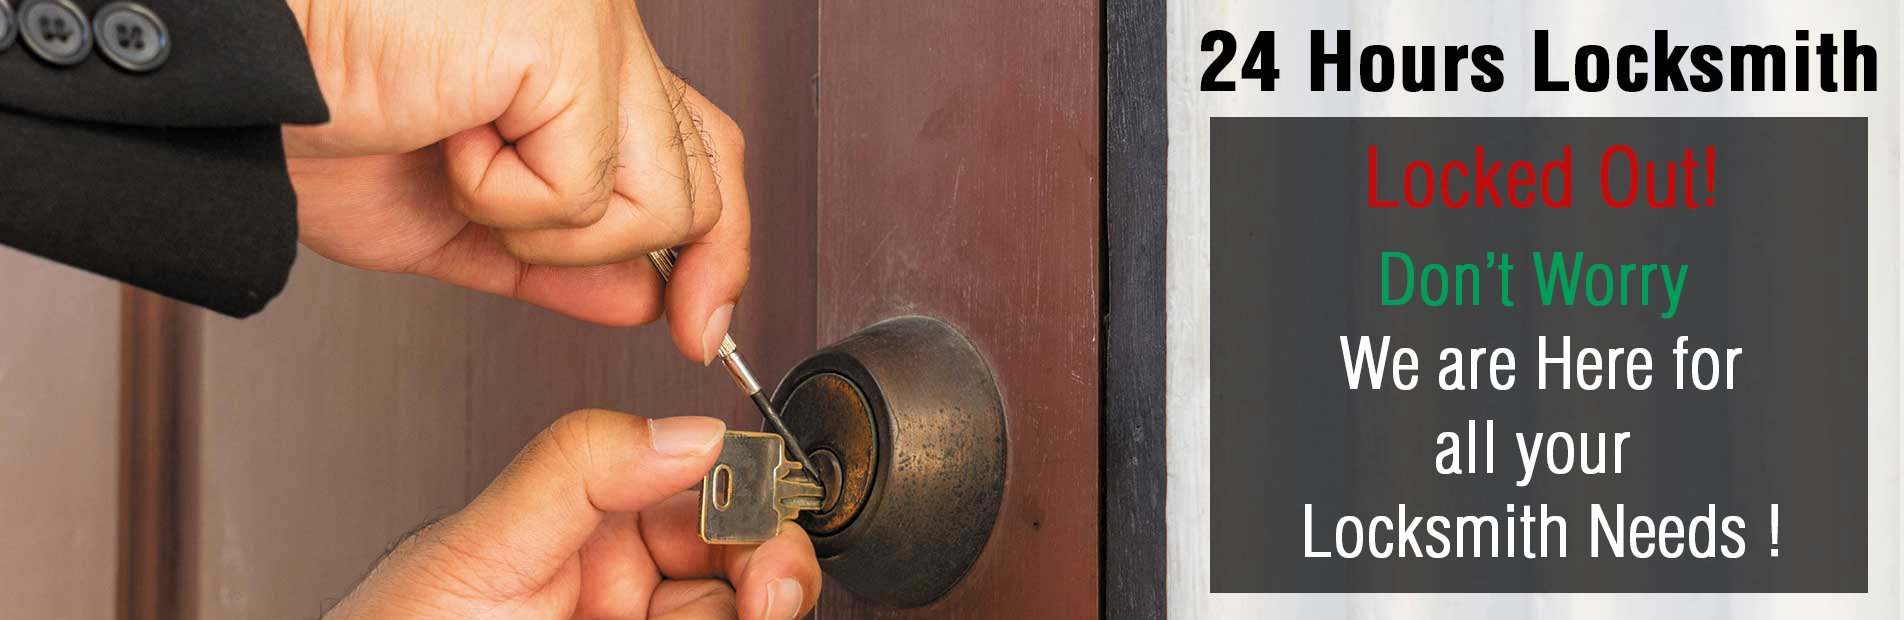 Fords Locksmith Service, Fords, NJ 732-837-9185